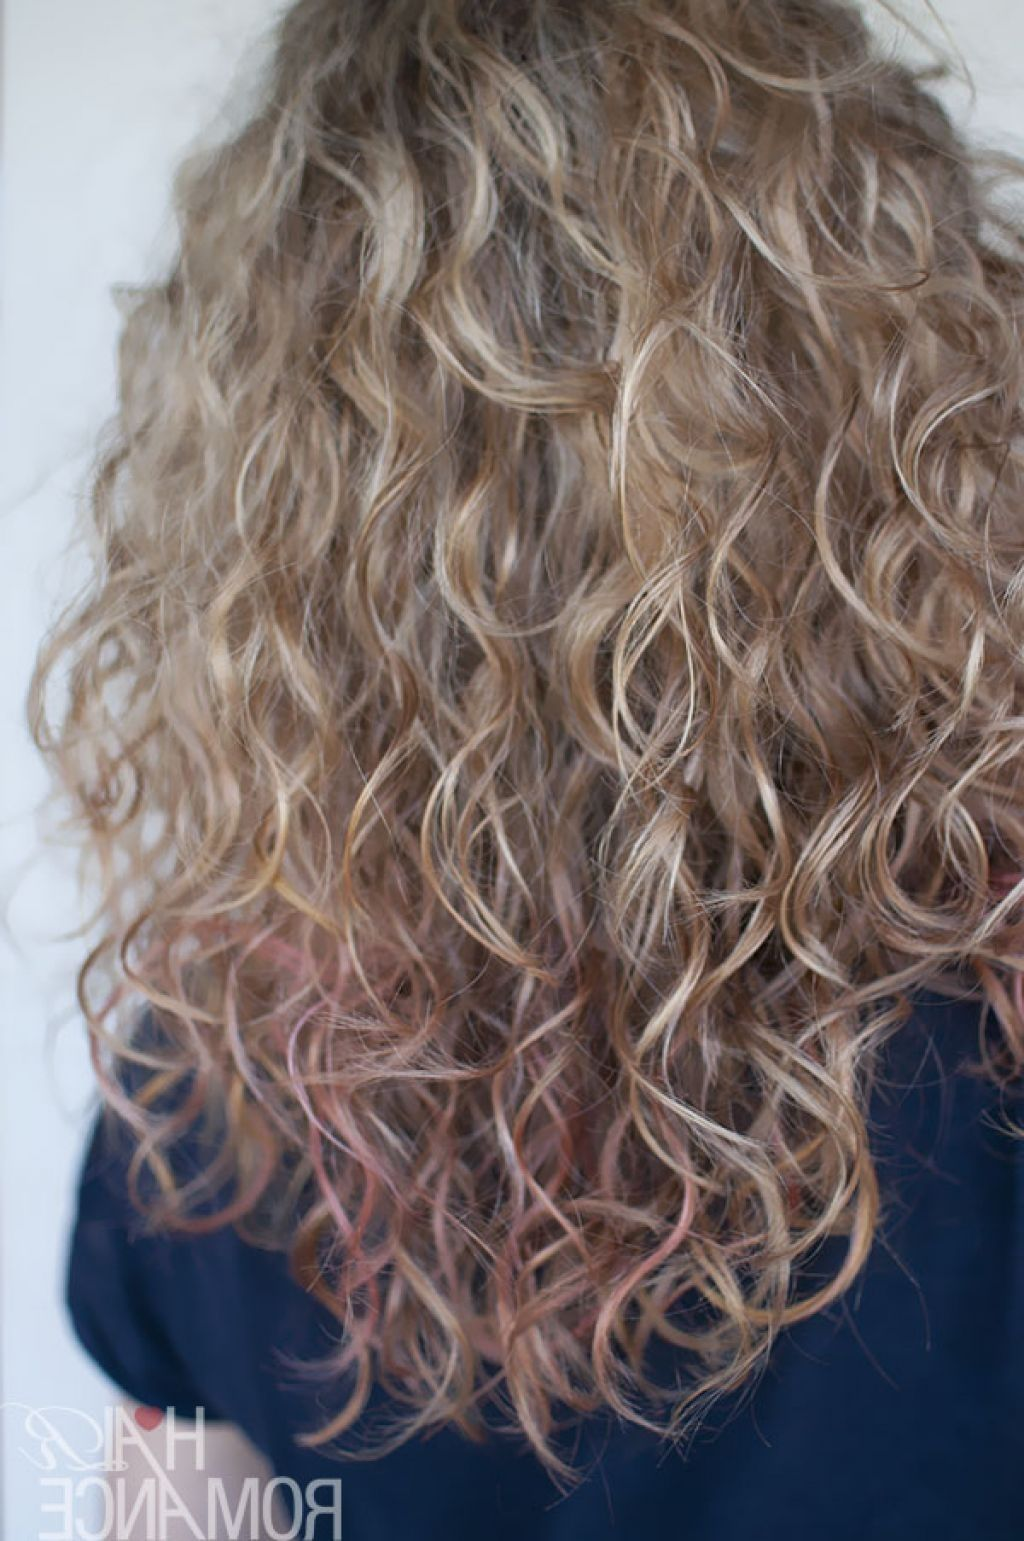 Long Layered Wavy Hair Back View Hairstyles And Haircuts With Greasy Hair Concept Curly Hair Styles Naturally Curly Hair Styles Permed Hairstyles